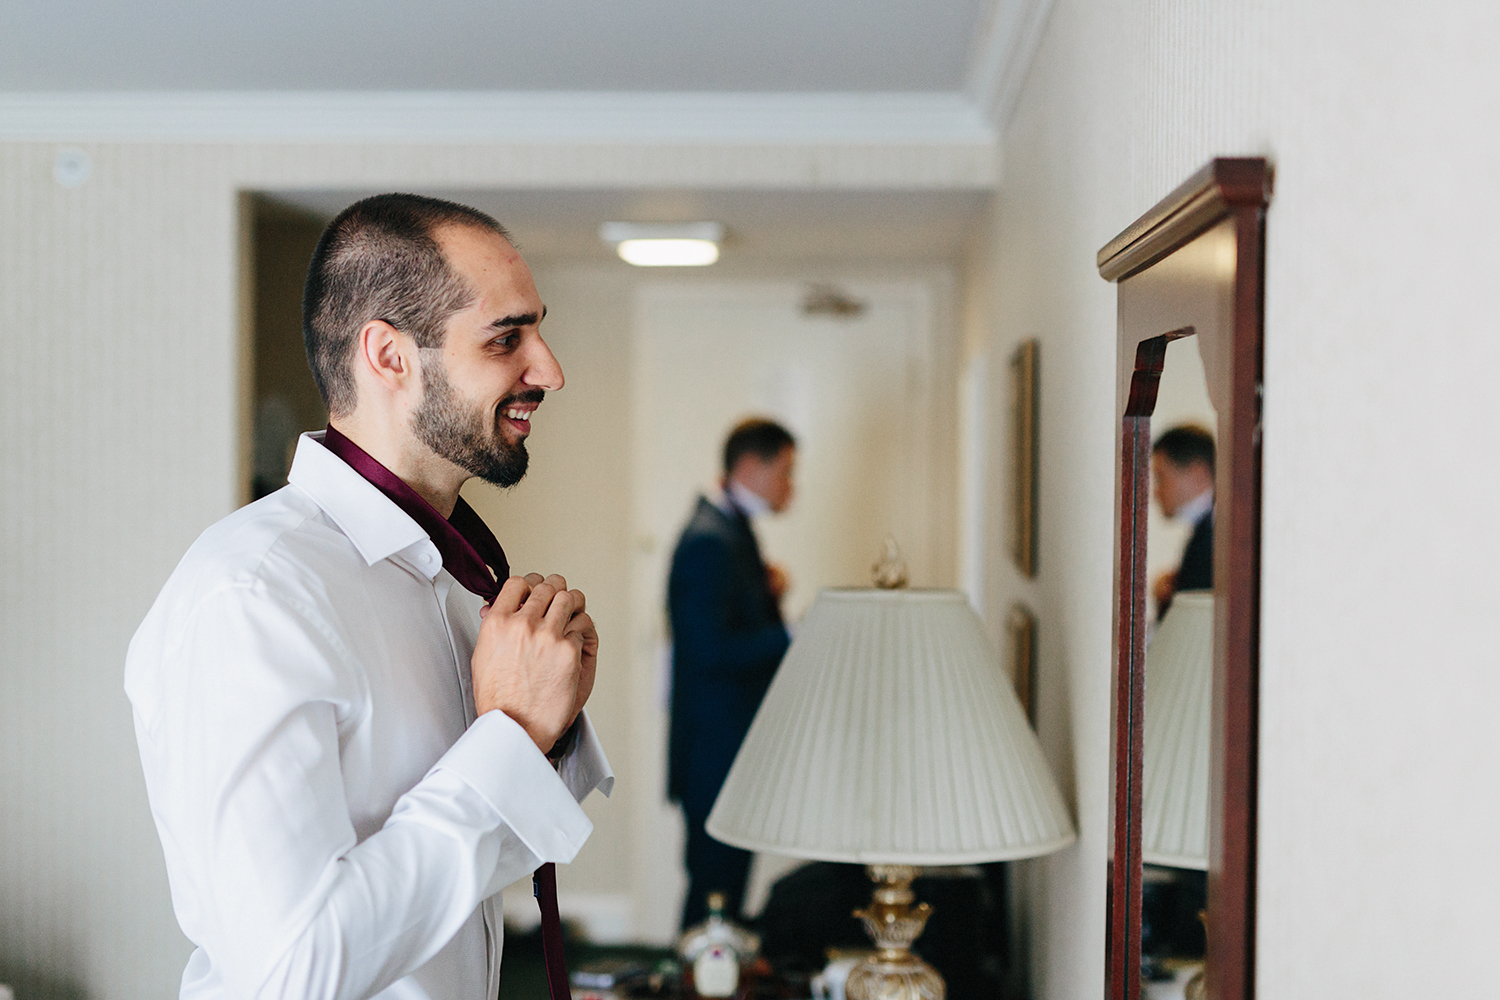 Toronto's-Best-Film-Wedding-Photography-3B-Photography-Brian-Batista-Bettencourt-Multicultural-wedding-day-two-Hamilton-Grimsby-Toronto-Wedding-Getting-Ready-Groom-getting-dressed-tying-tie.jpg